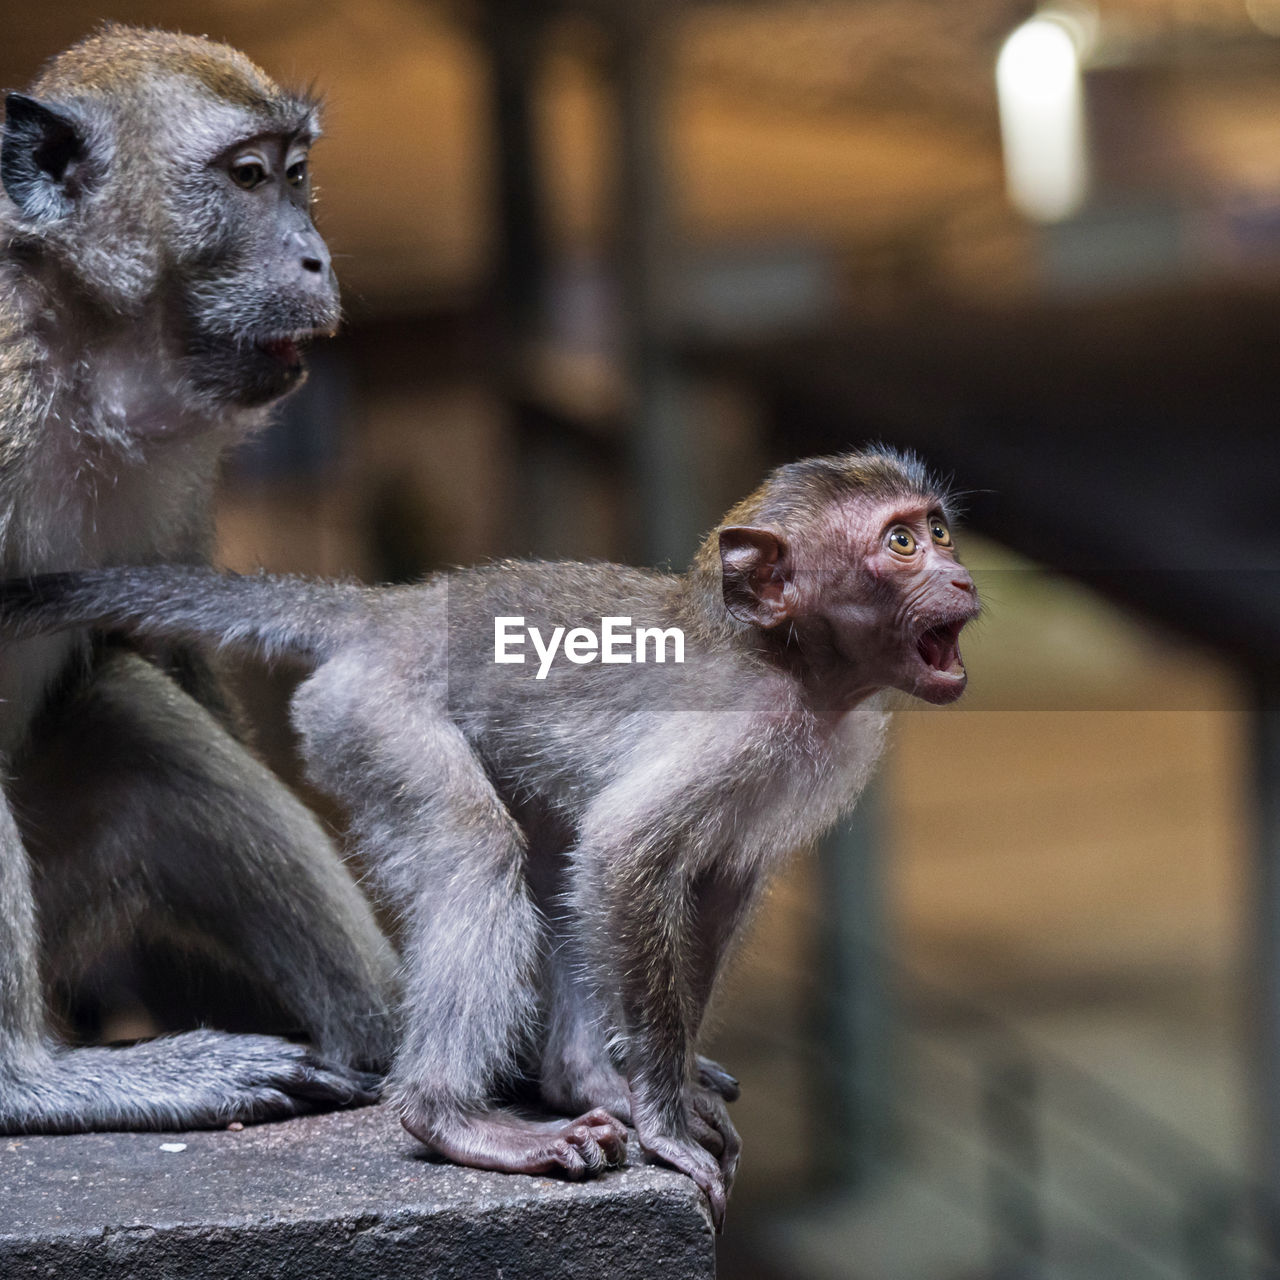 primate, mammal, focus on foreground, animal wildlife, looking, vertebrate, looking away, animals in the wild, one animal, people, sitting, day, outdoors, young, animal family, care, mouth open